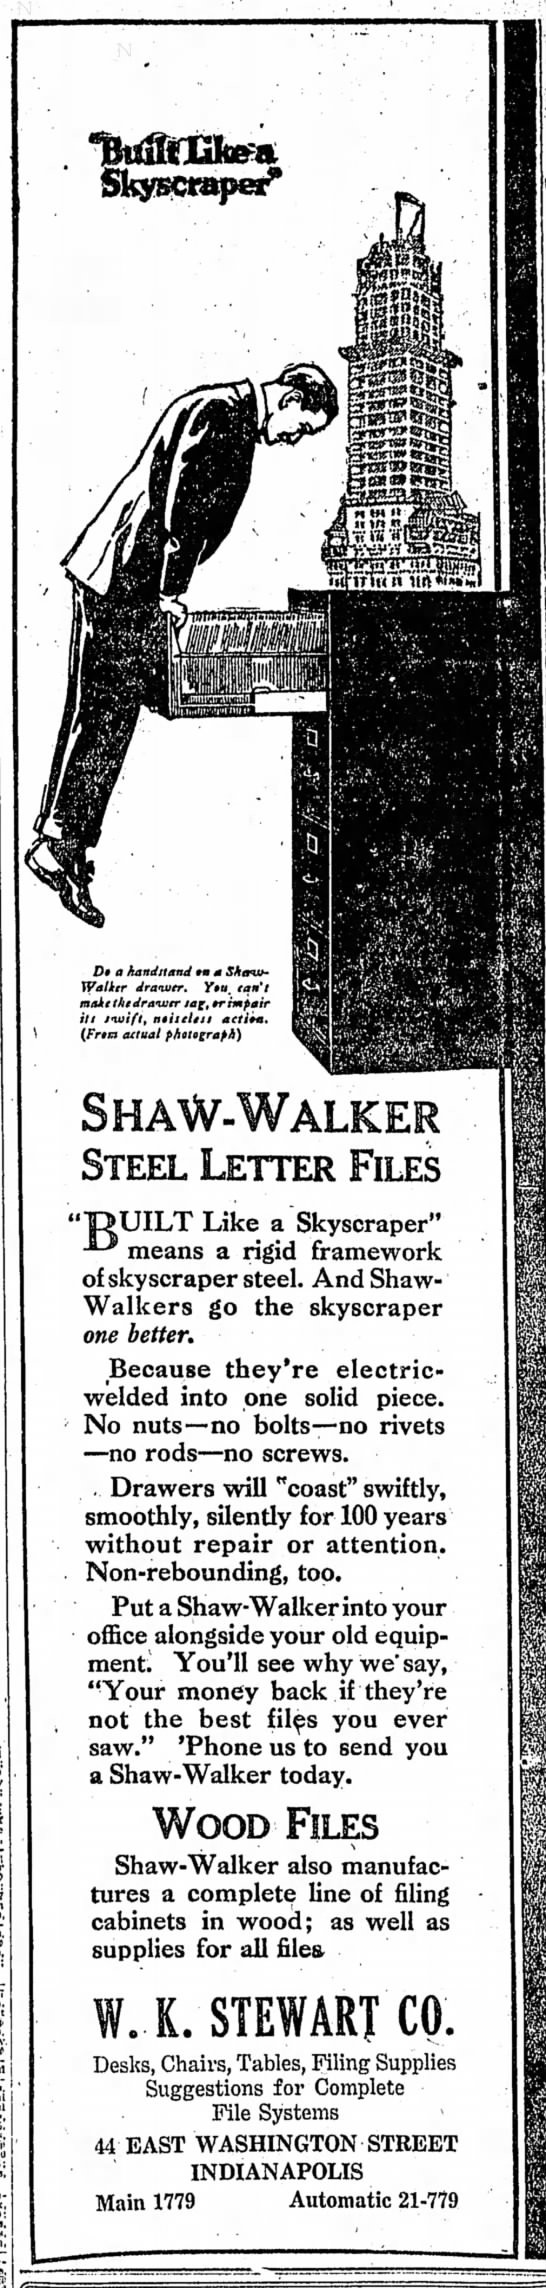 The Indianapolis Star, 30 September 1919, p. 14.